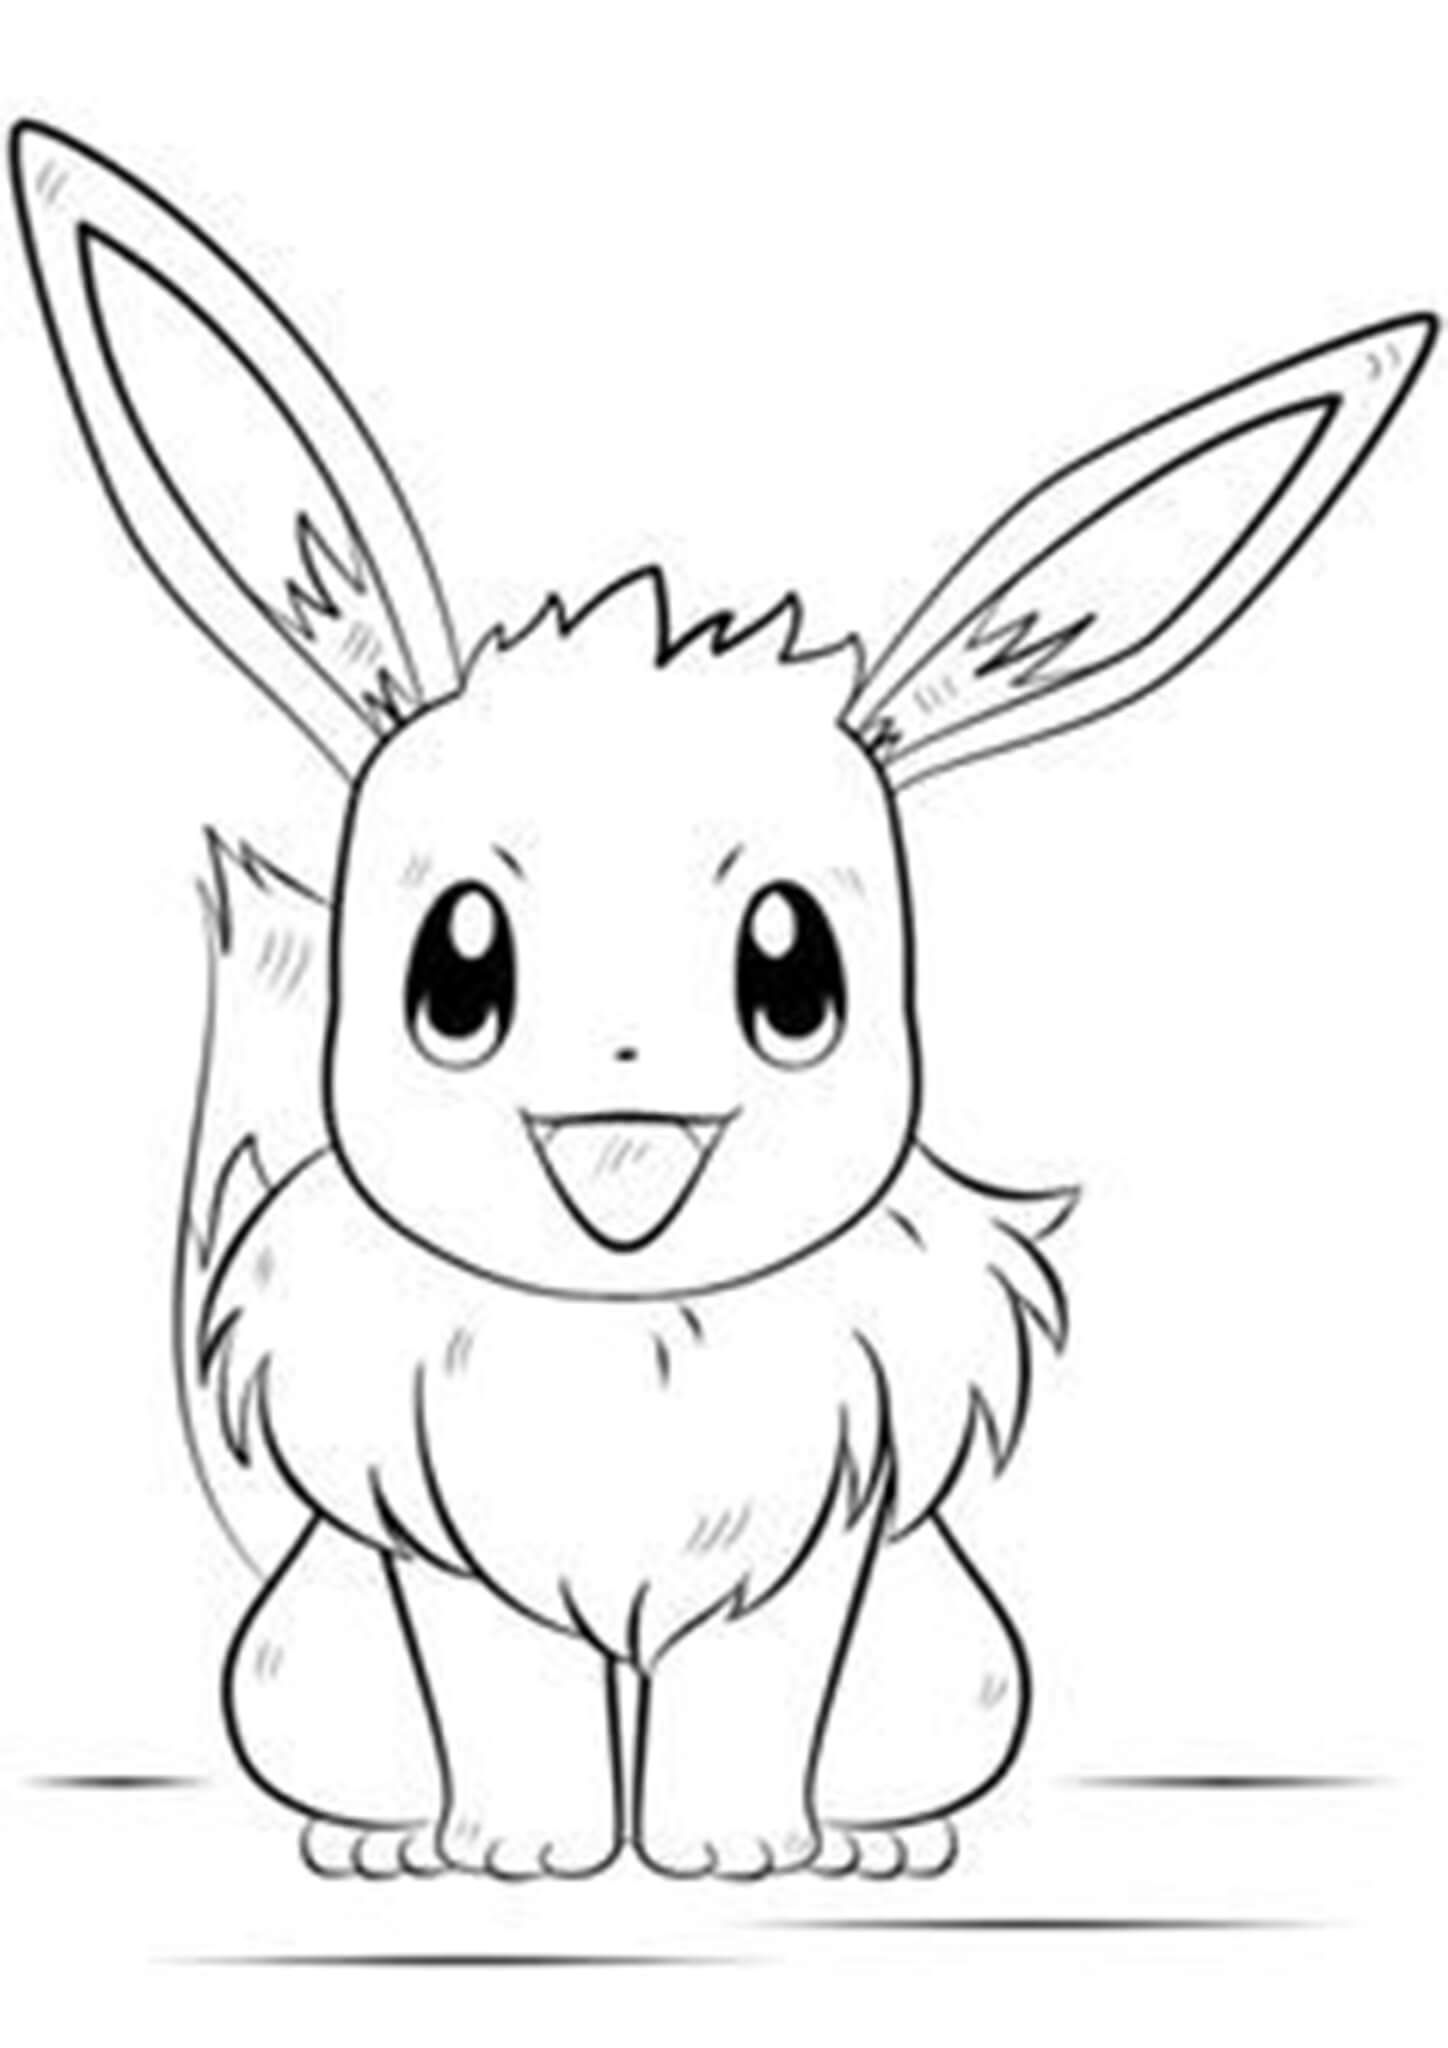 Free Easy To Print Eevee Coloring Pages In 2021 Pokemon Coloring Pikachu Coloring Page Pokemon Coloring Pages